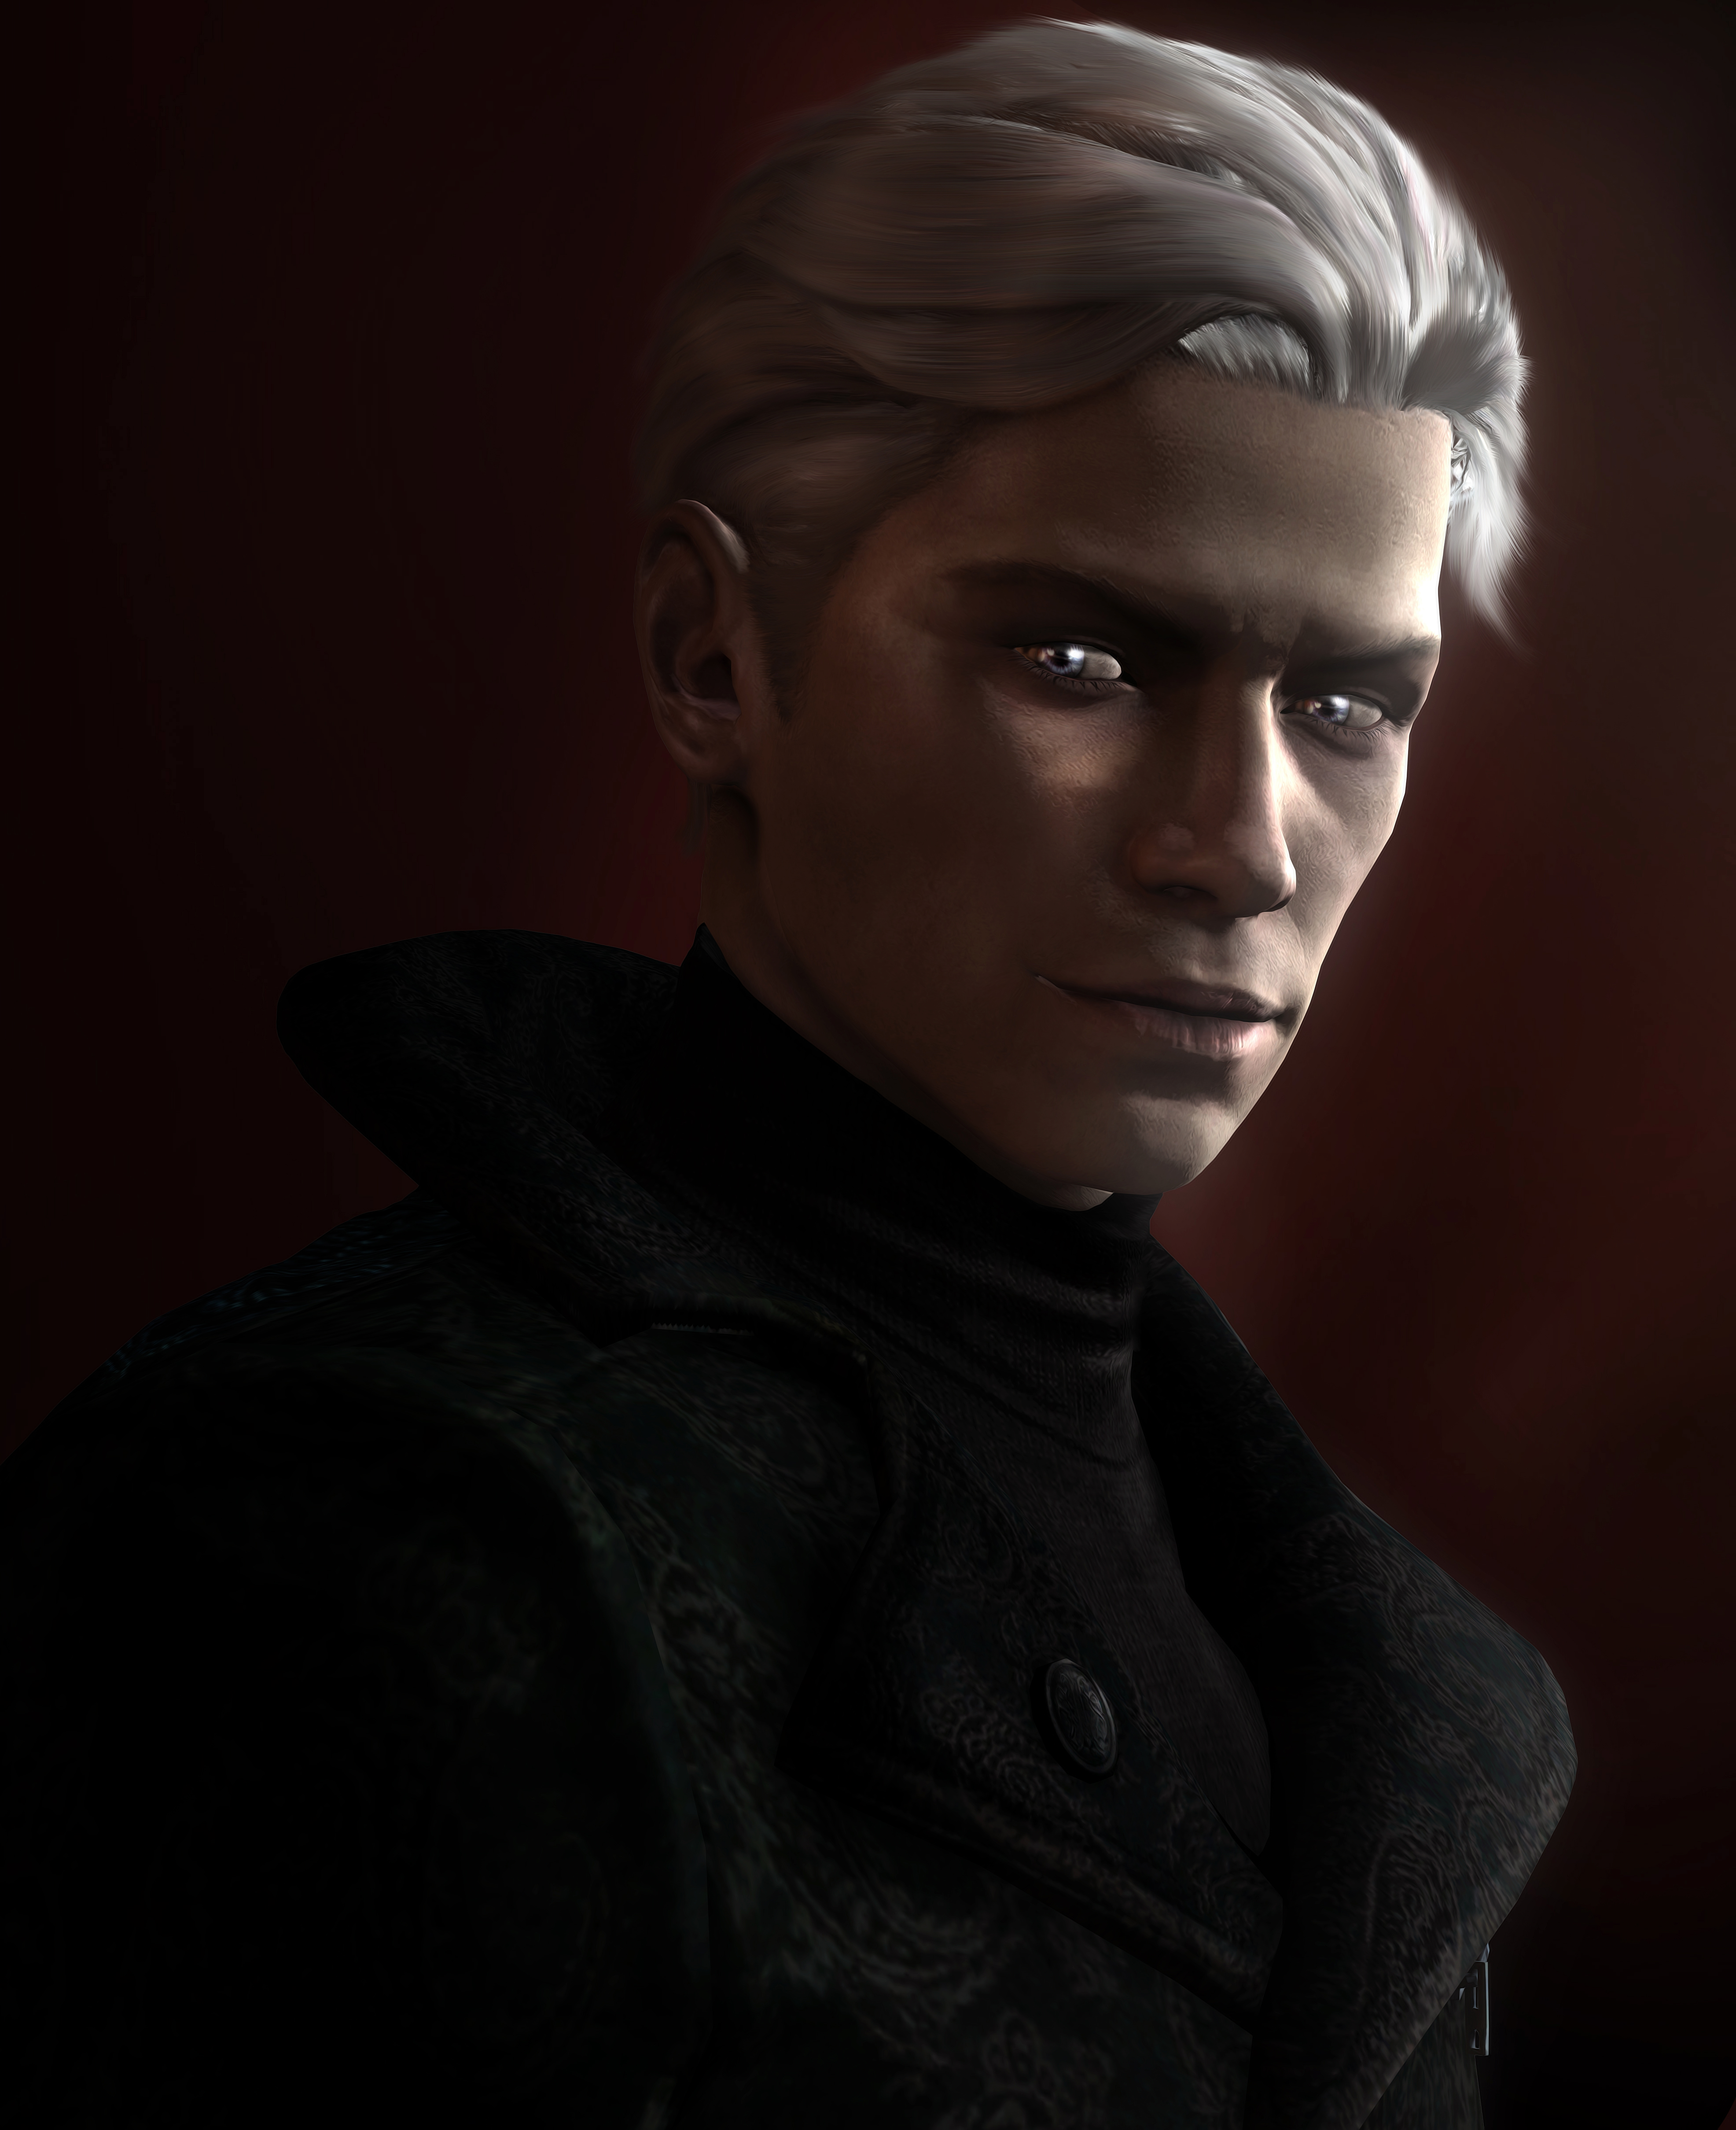 Portrait of vergil by annapostal666 on deviantart portrait of vergil by annapostal666 portrait of vergil by annapostal666 voltagebd Images